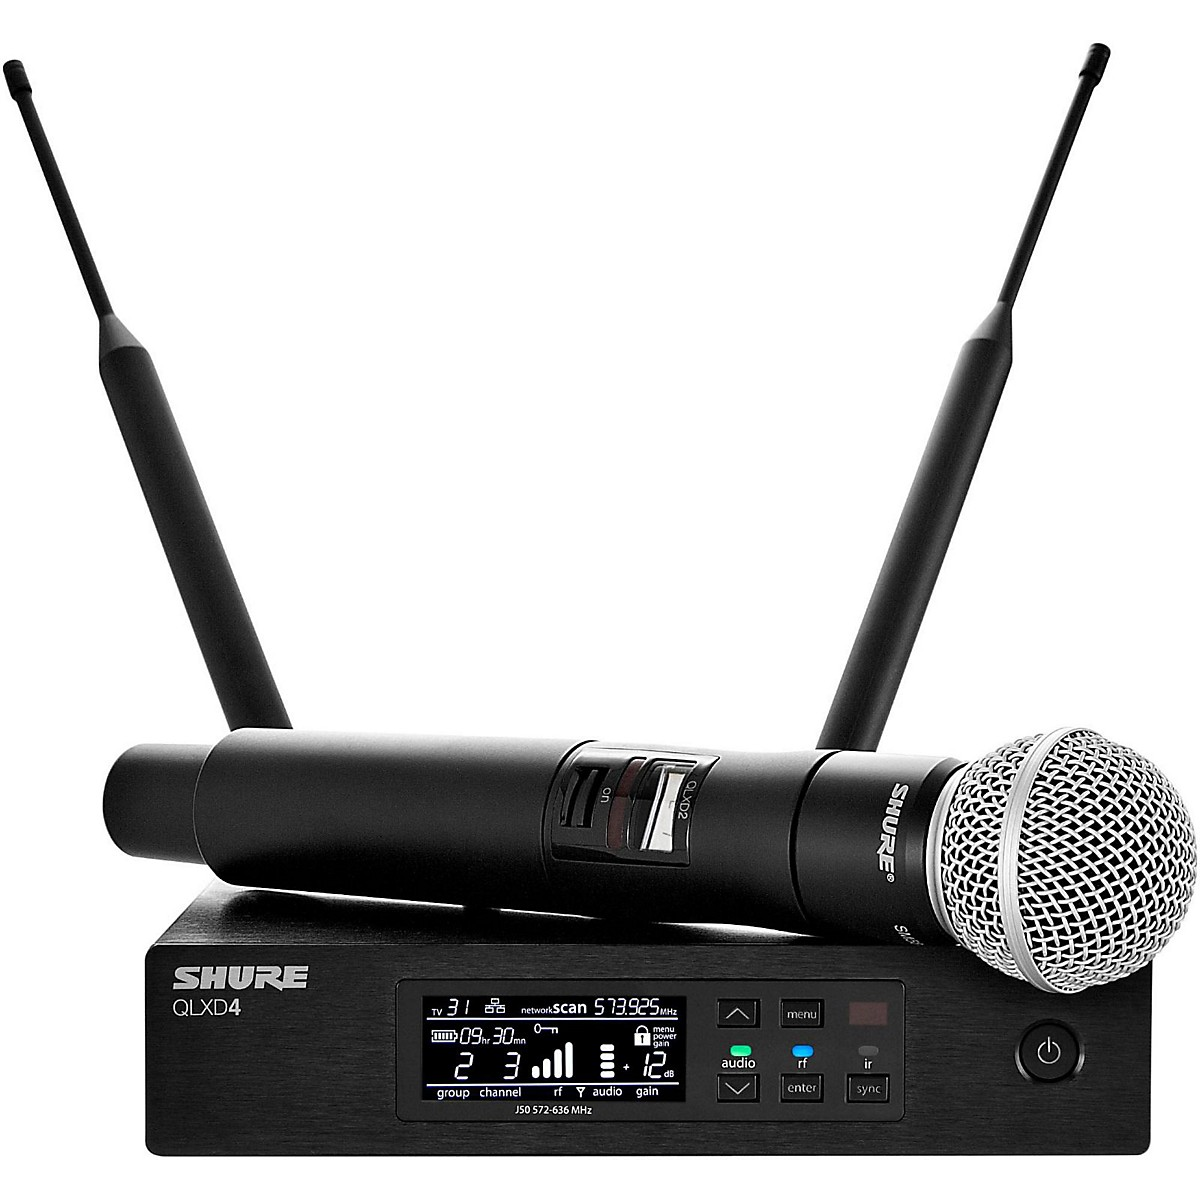 Shure QLX-D Digital Wireless System with SM58 Dynamic Microphone